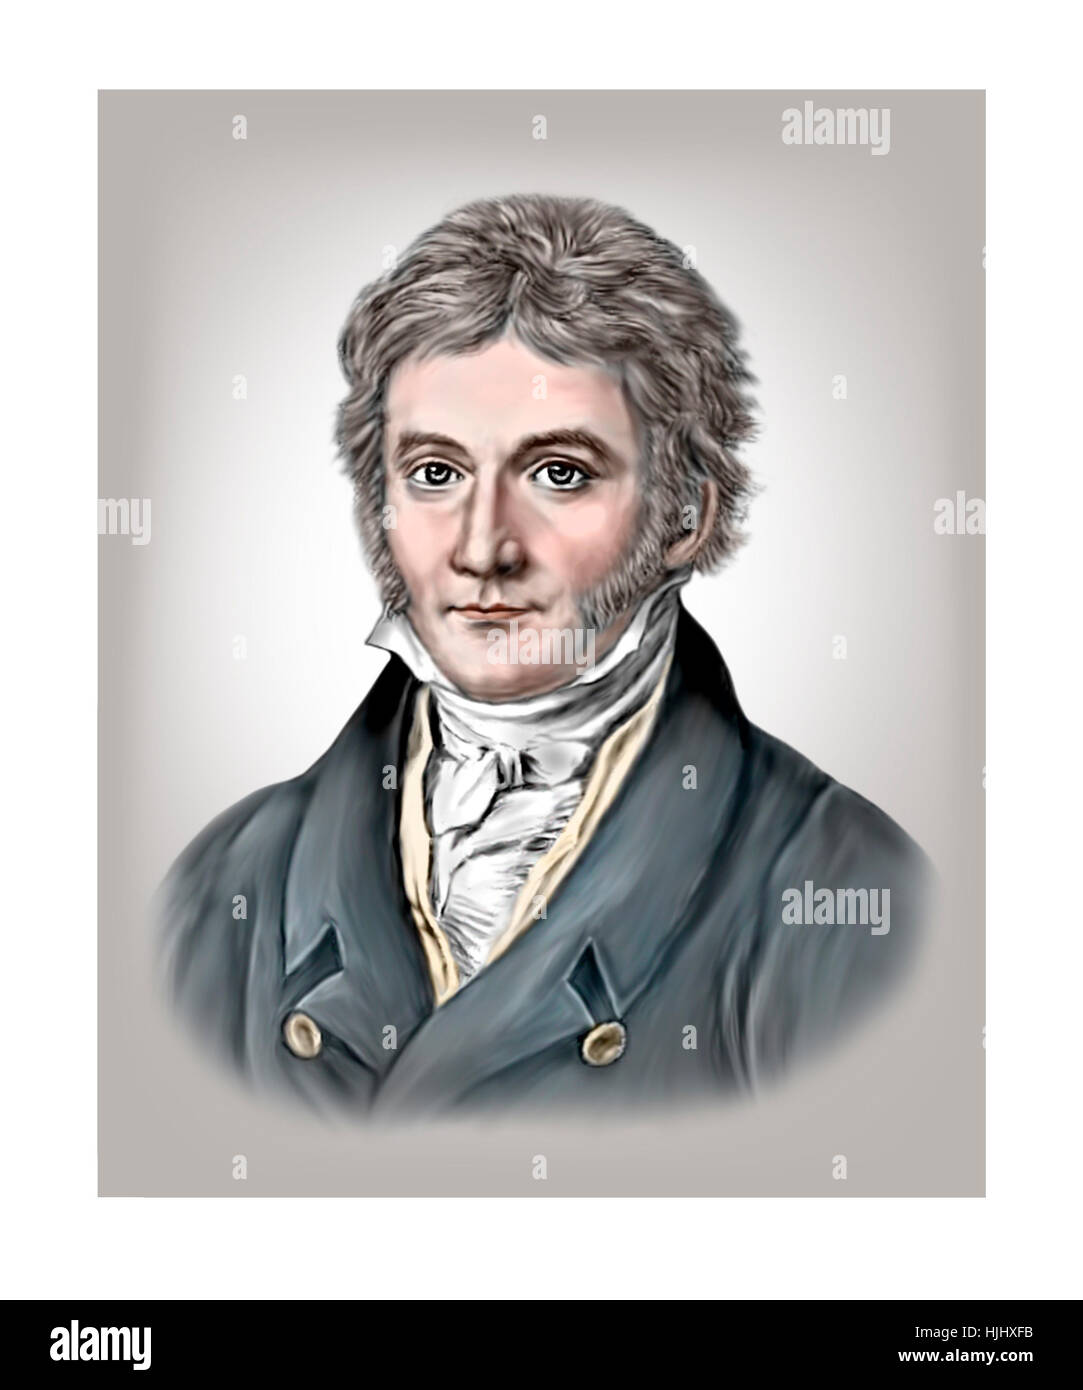 a biography of karl gauss Johann carl friedrich gauss (april 30, 1777 - february 23, 1855) was a german mathematician, astronomer and physicist with a wide range of contributions he is considered to be one of the leading mathematicians of all time (his name rhymes with house).